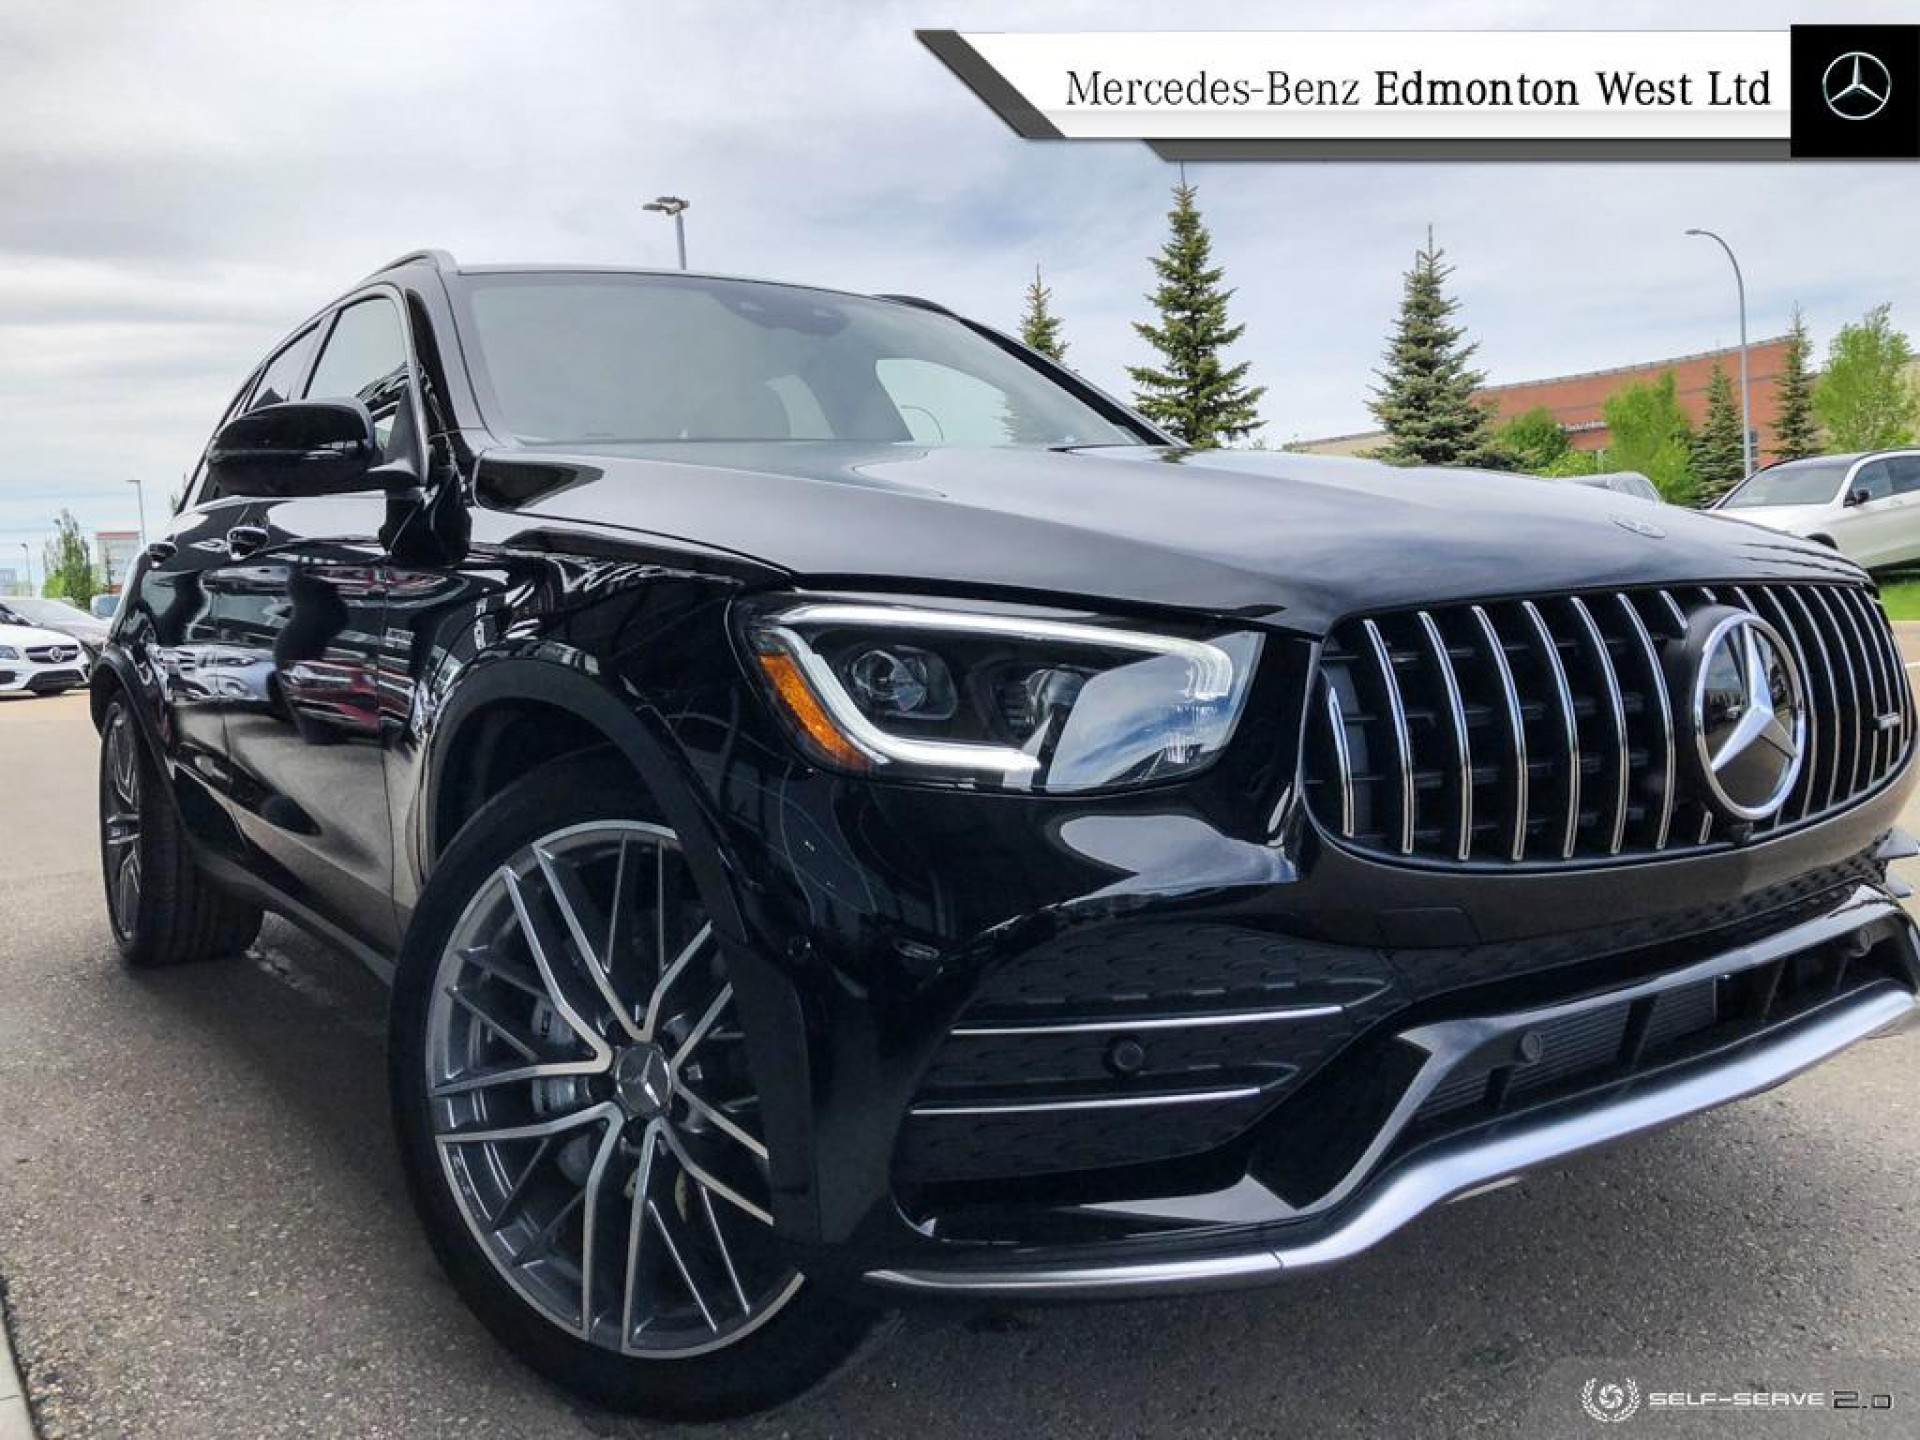 New 2020 Mercedes Benz GLC-Class AMG 43 4MATIC SUV